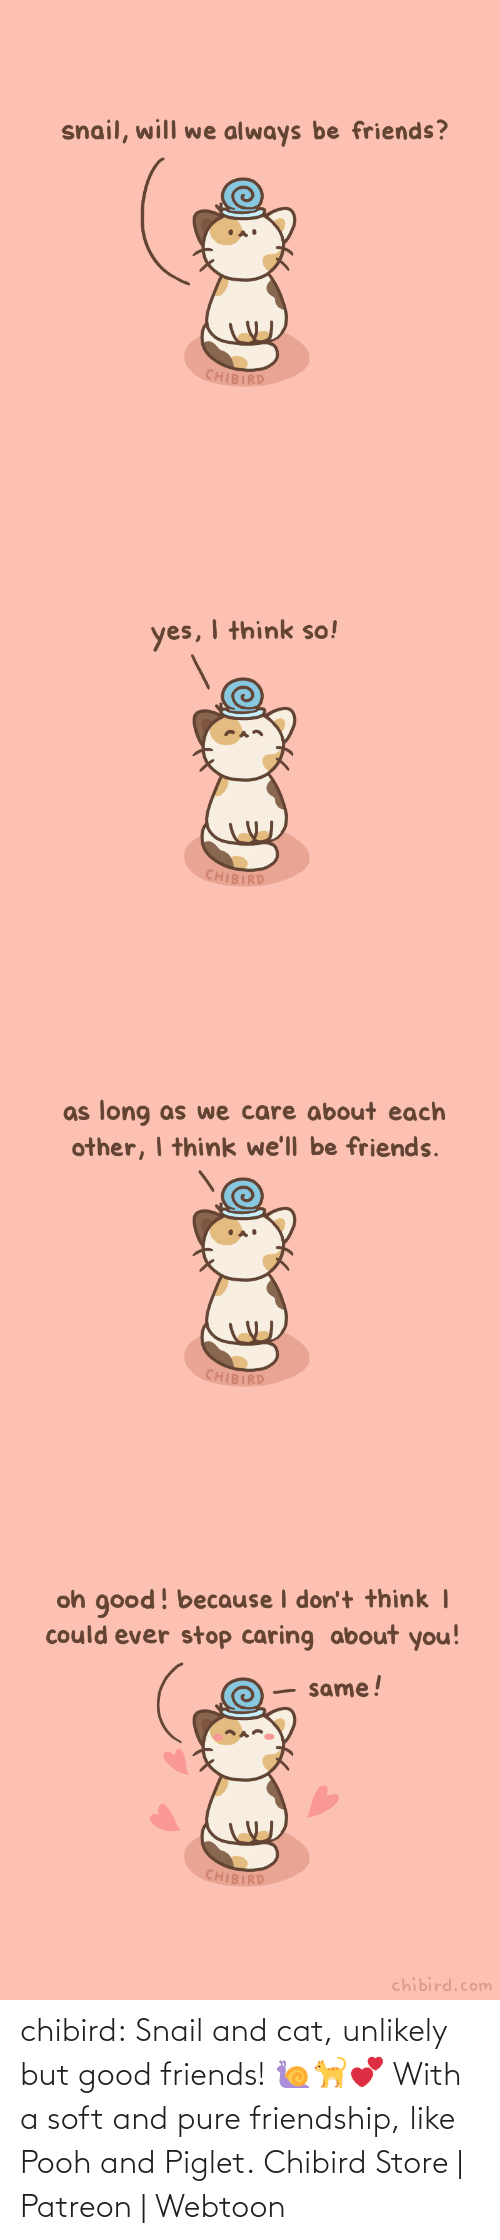 piglet: chibird:  Snail and cat, unlikely but good friends! 🐌🐈💕 With a soft and pure friendship, like Pooh and Piglet.  Chibird Store | Patreon | Webtoon